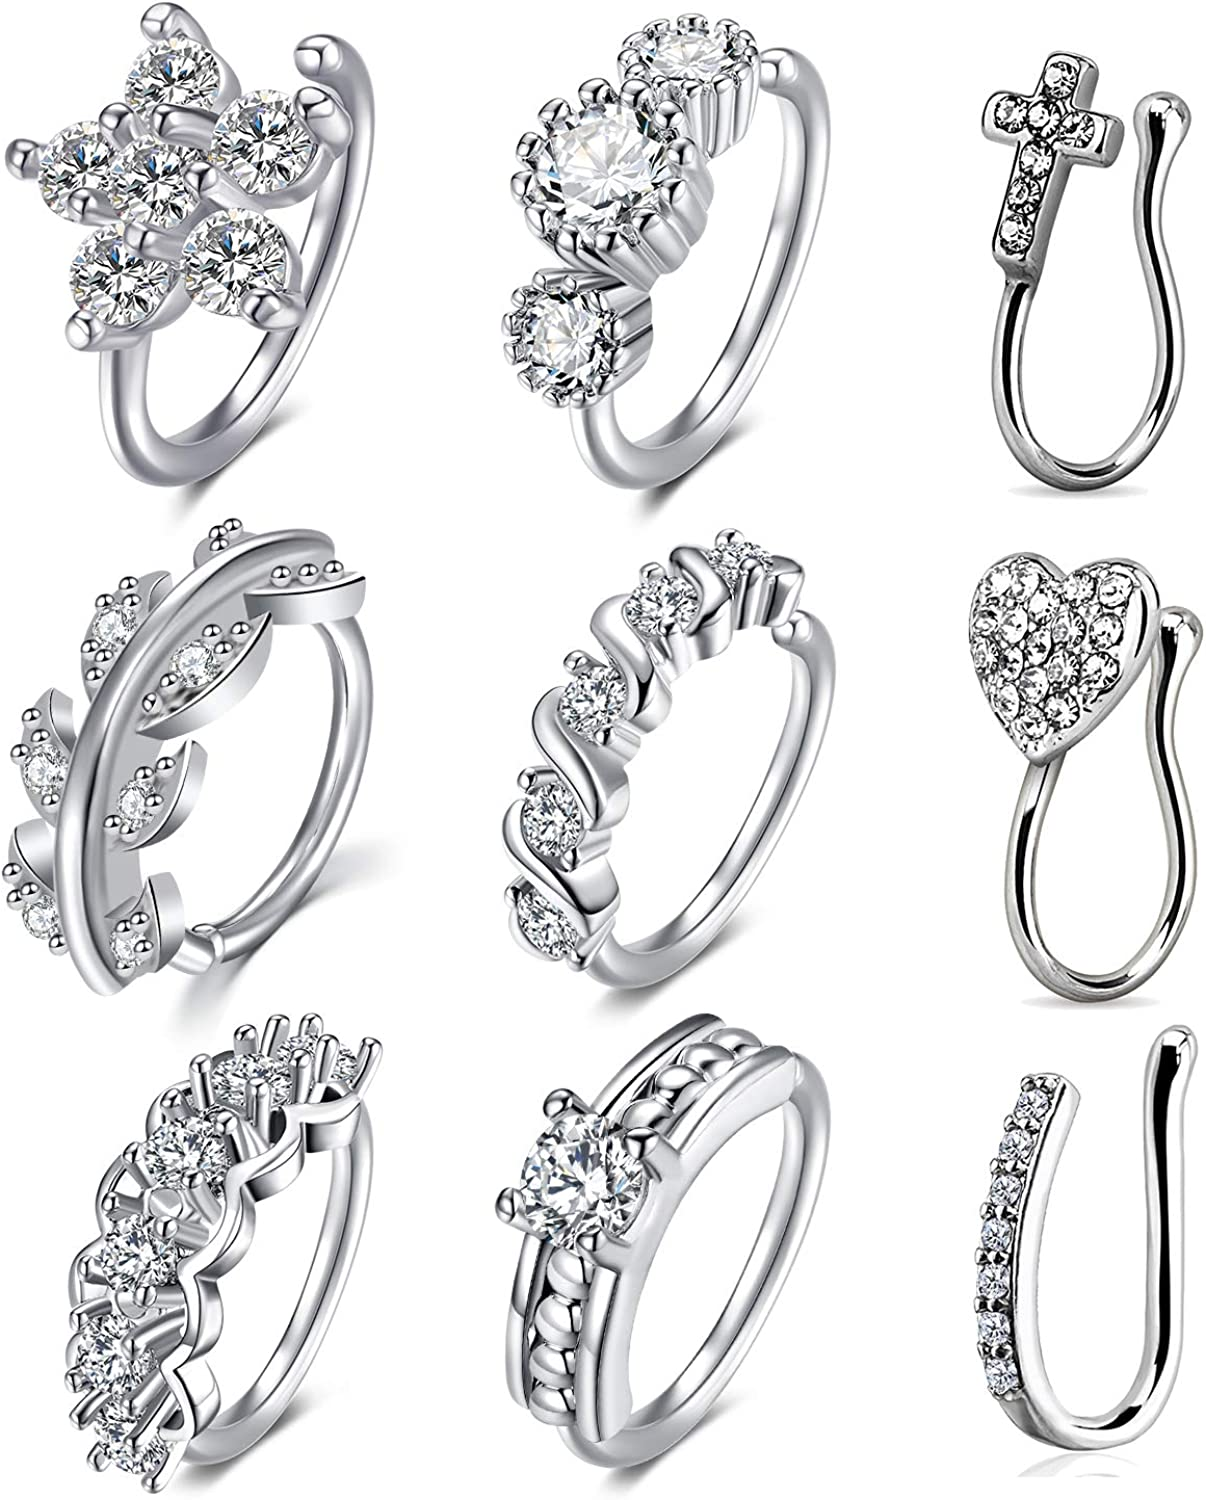 WillTen 18G Stainless Steel Fake Nose Rings Hoop Clip On Non-Piercing Nose Septum Ring Cartilage Tragus Ear Faux Piercing Body